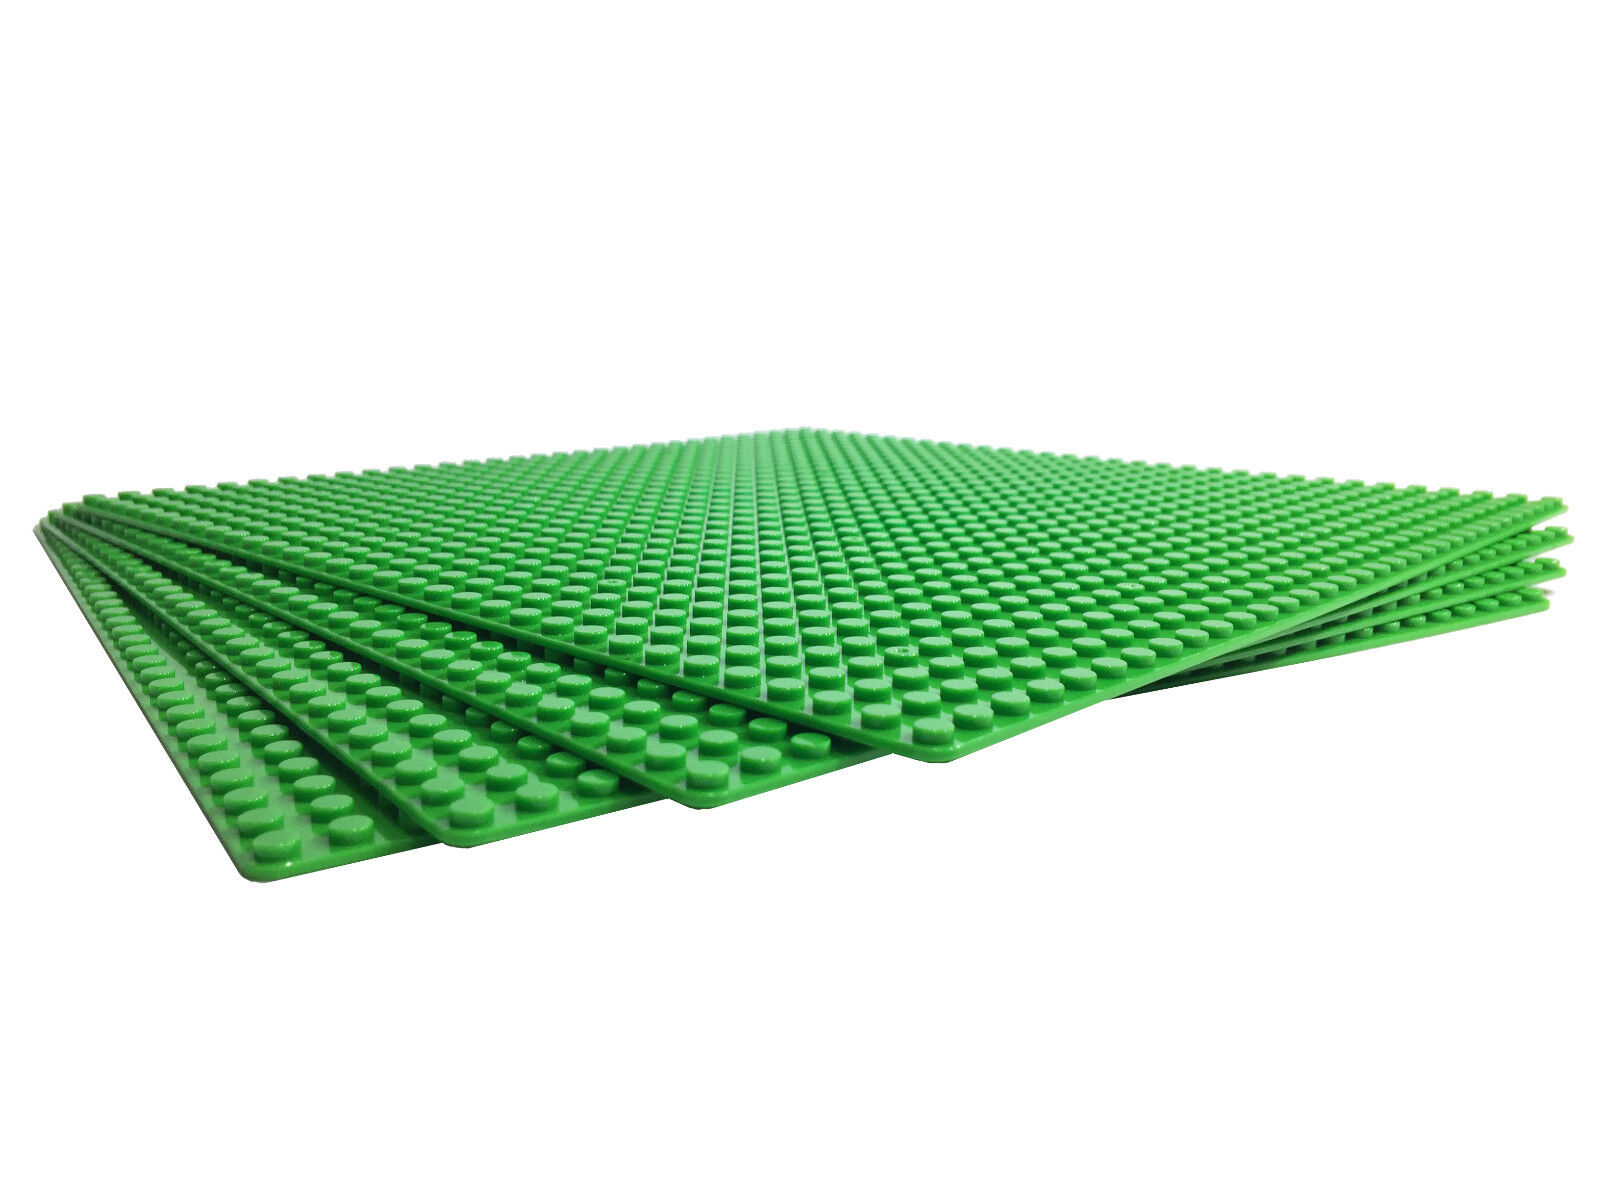 Trans Clear Brick Building Baseplate Base Plate Four 6x12 Areas Lego Compatible